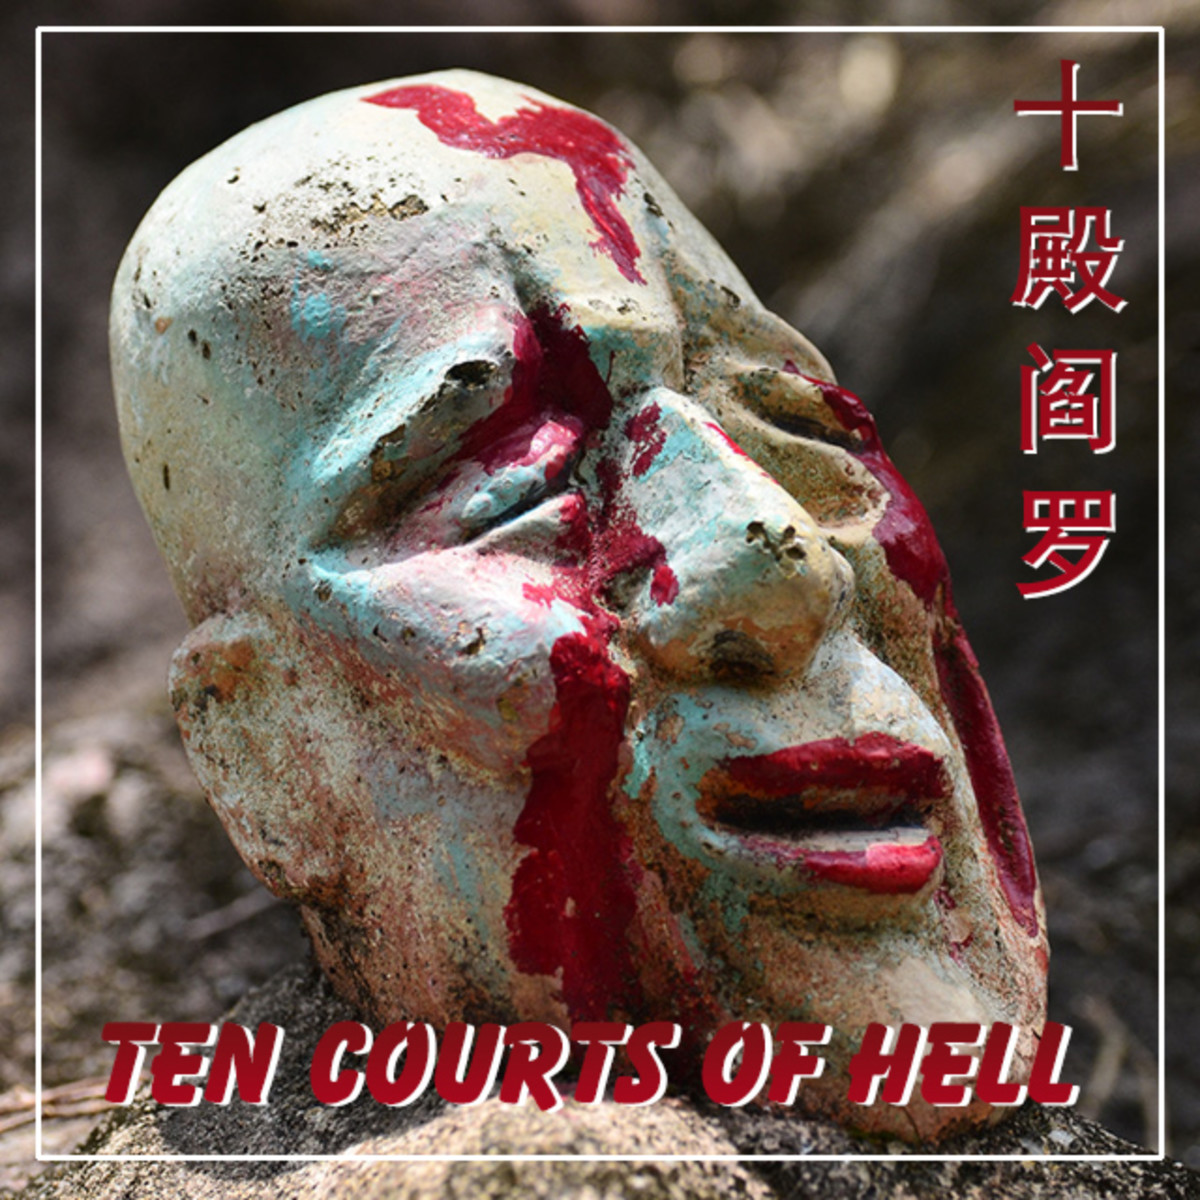 The Chinese Ten Courts of Hell summons you. Are ye ready?